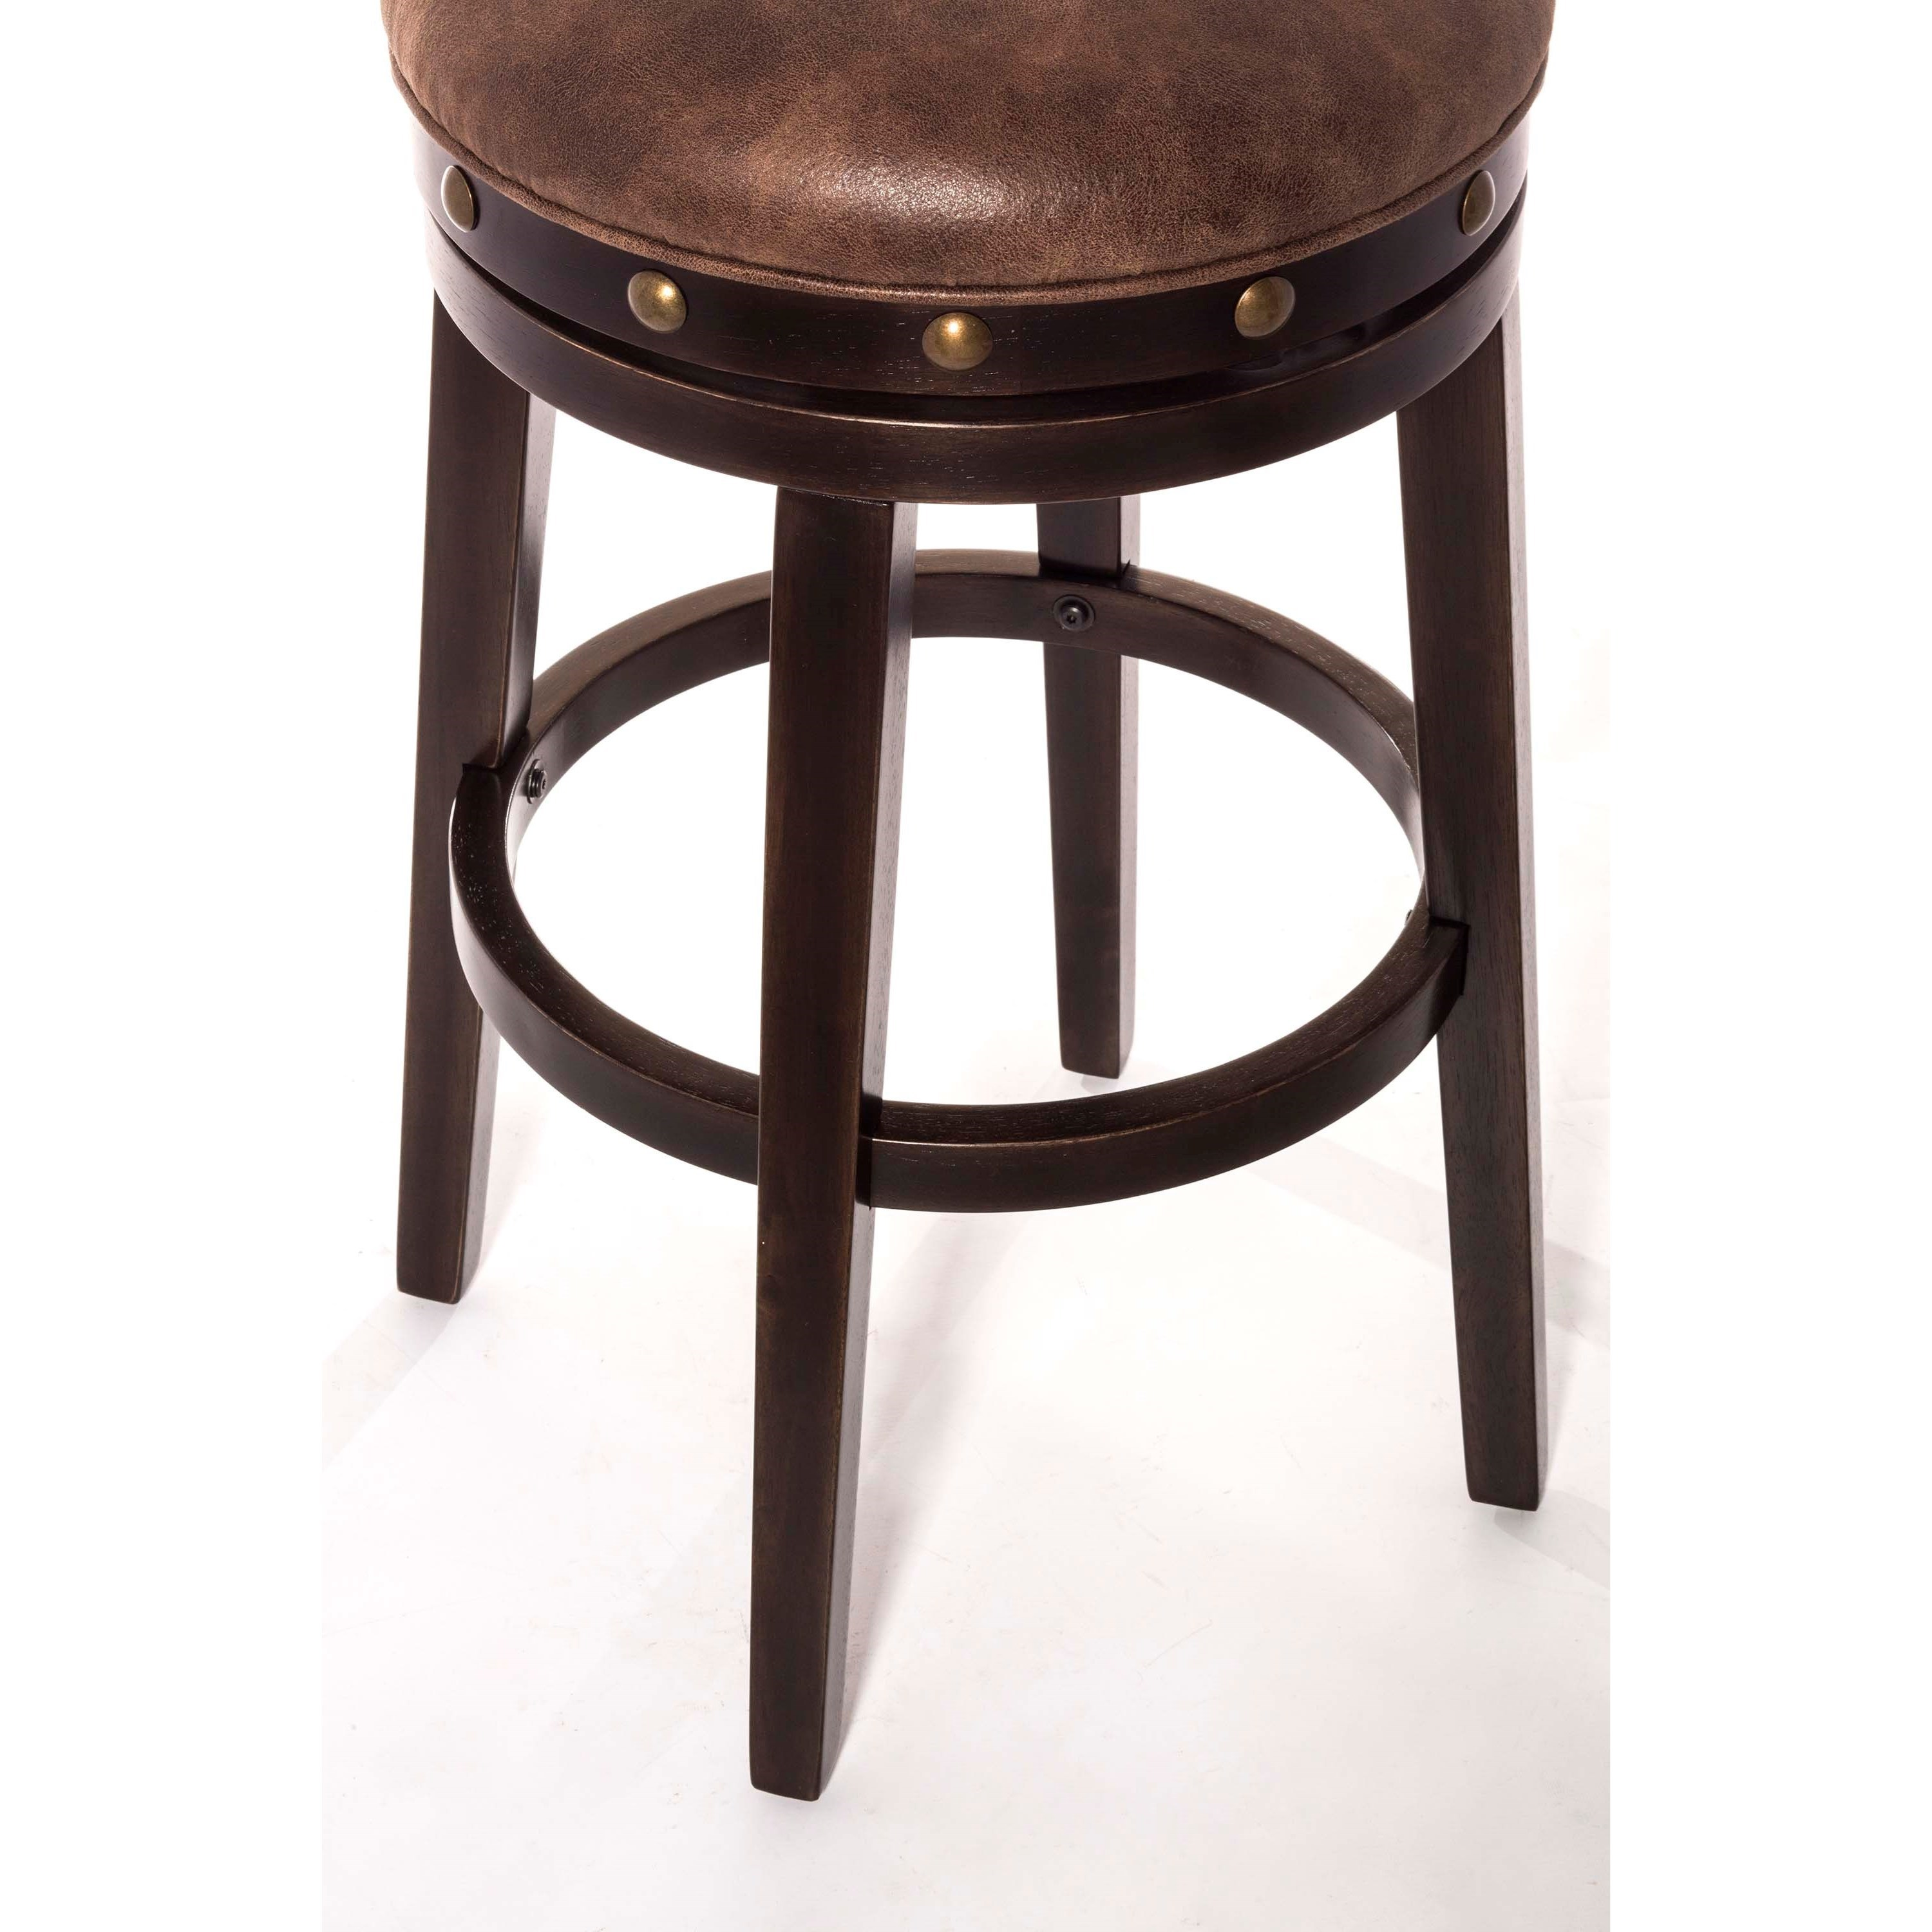 Hillsdale Backless Bar Stools Streamlined Deep Smoke Finish Backless Counter Stool Conlin S - Backless Stools